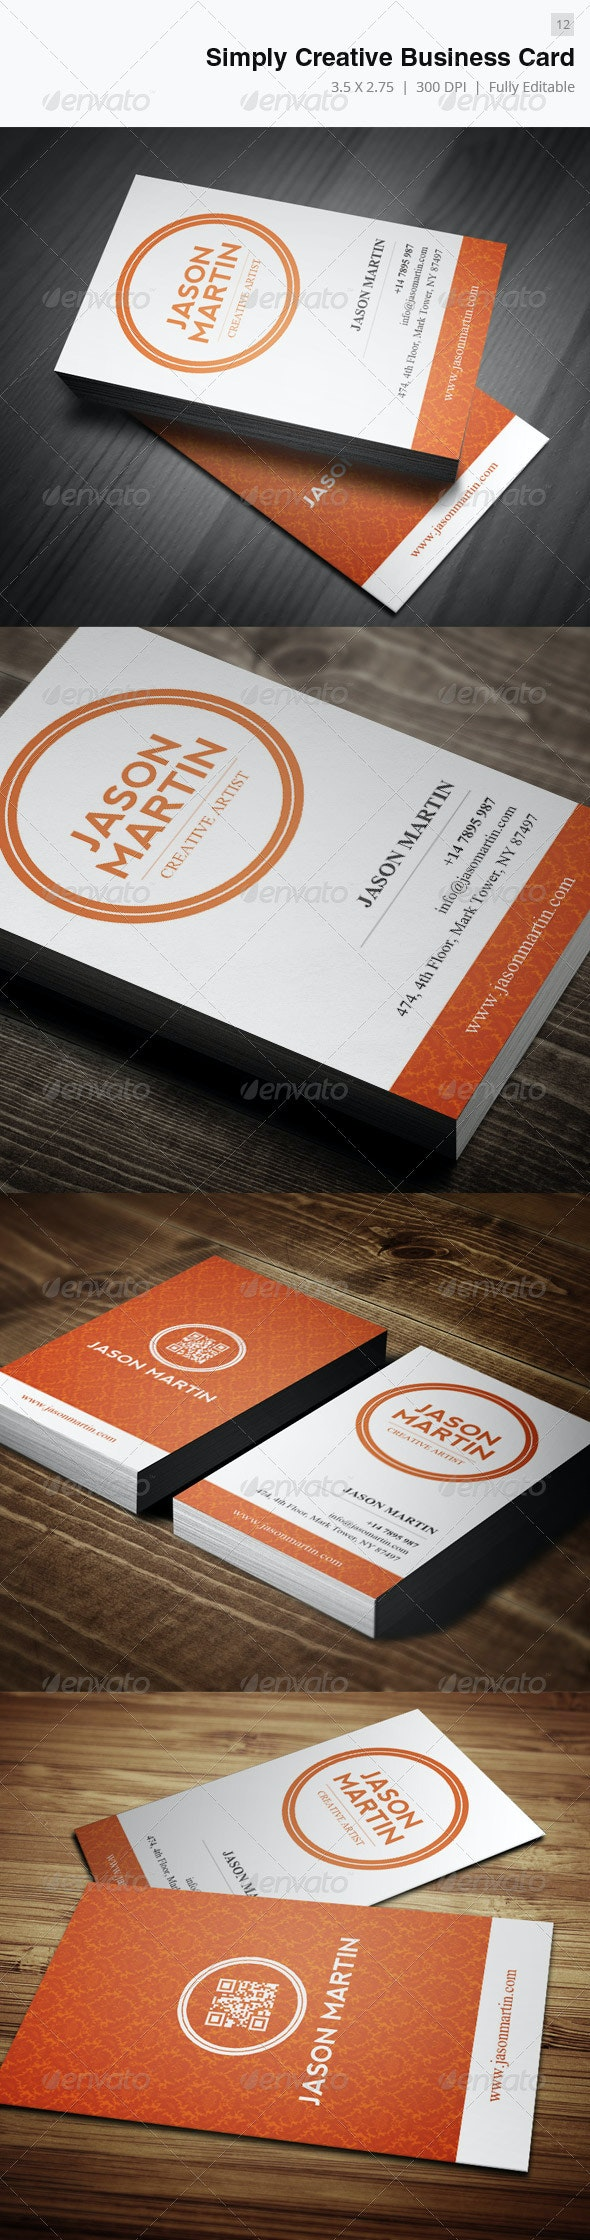 Simply Creative Business Card - 12 - Creative Business Cards